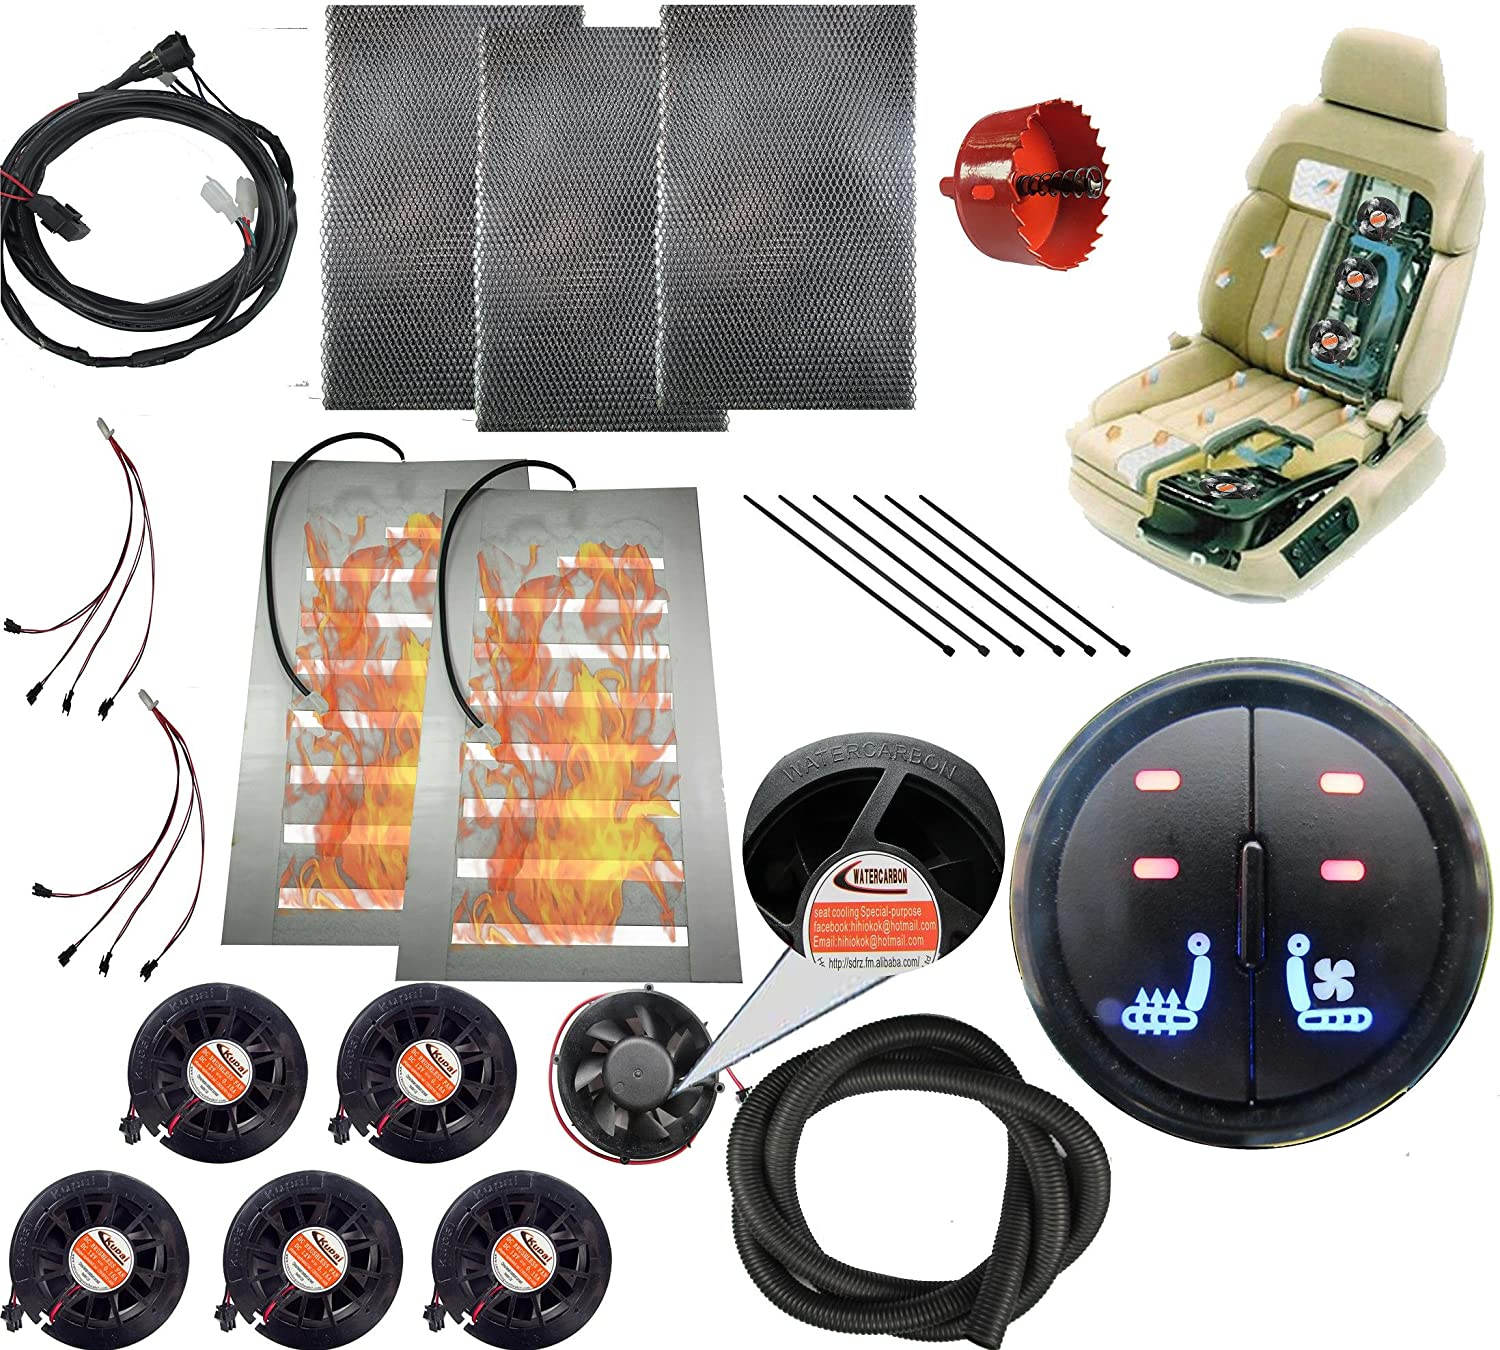 Tech Era 12v car Heated and Cooled seat pad Kits System Left//Heated Right//Cooling 2 Button Round Switch Heater pad car Ventilated seat Cooler 6 Fans 1 seat-Blow Wind Style